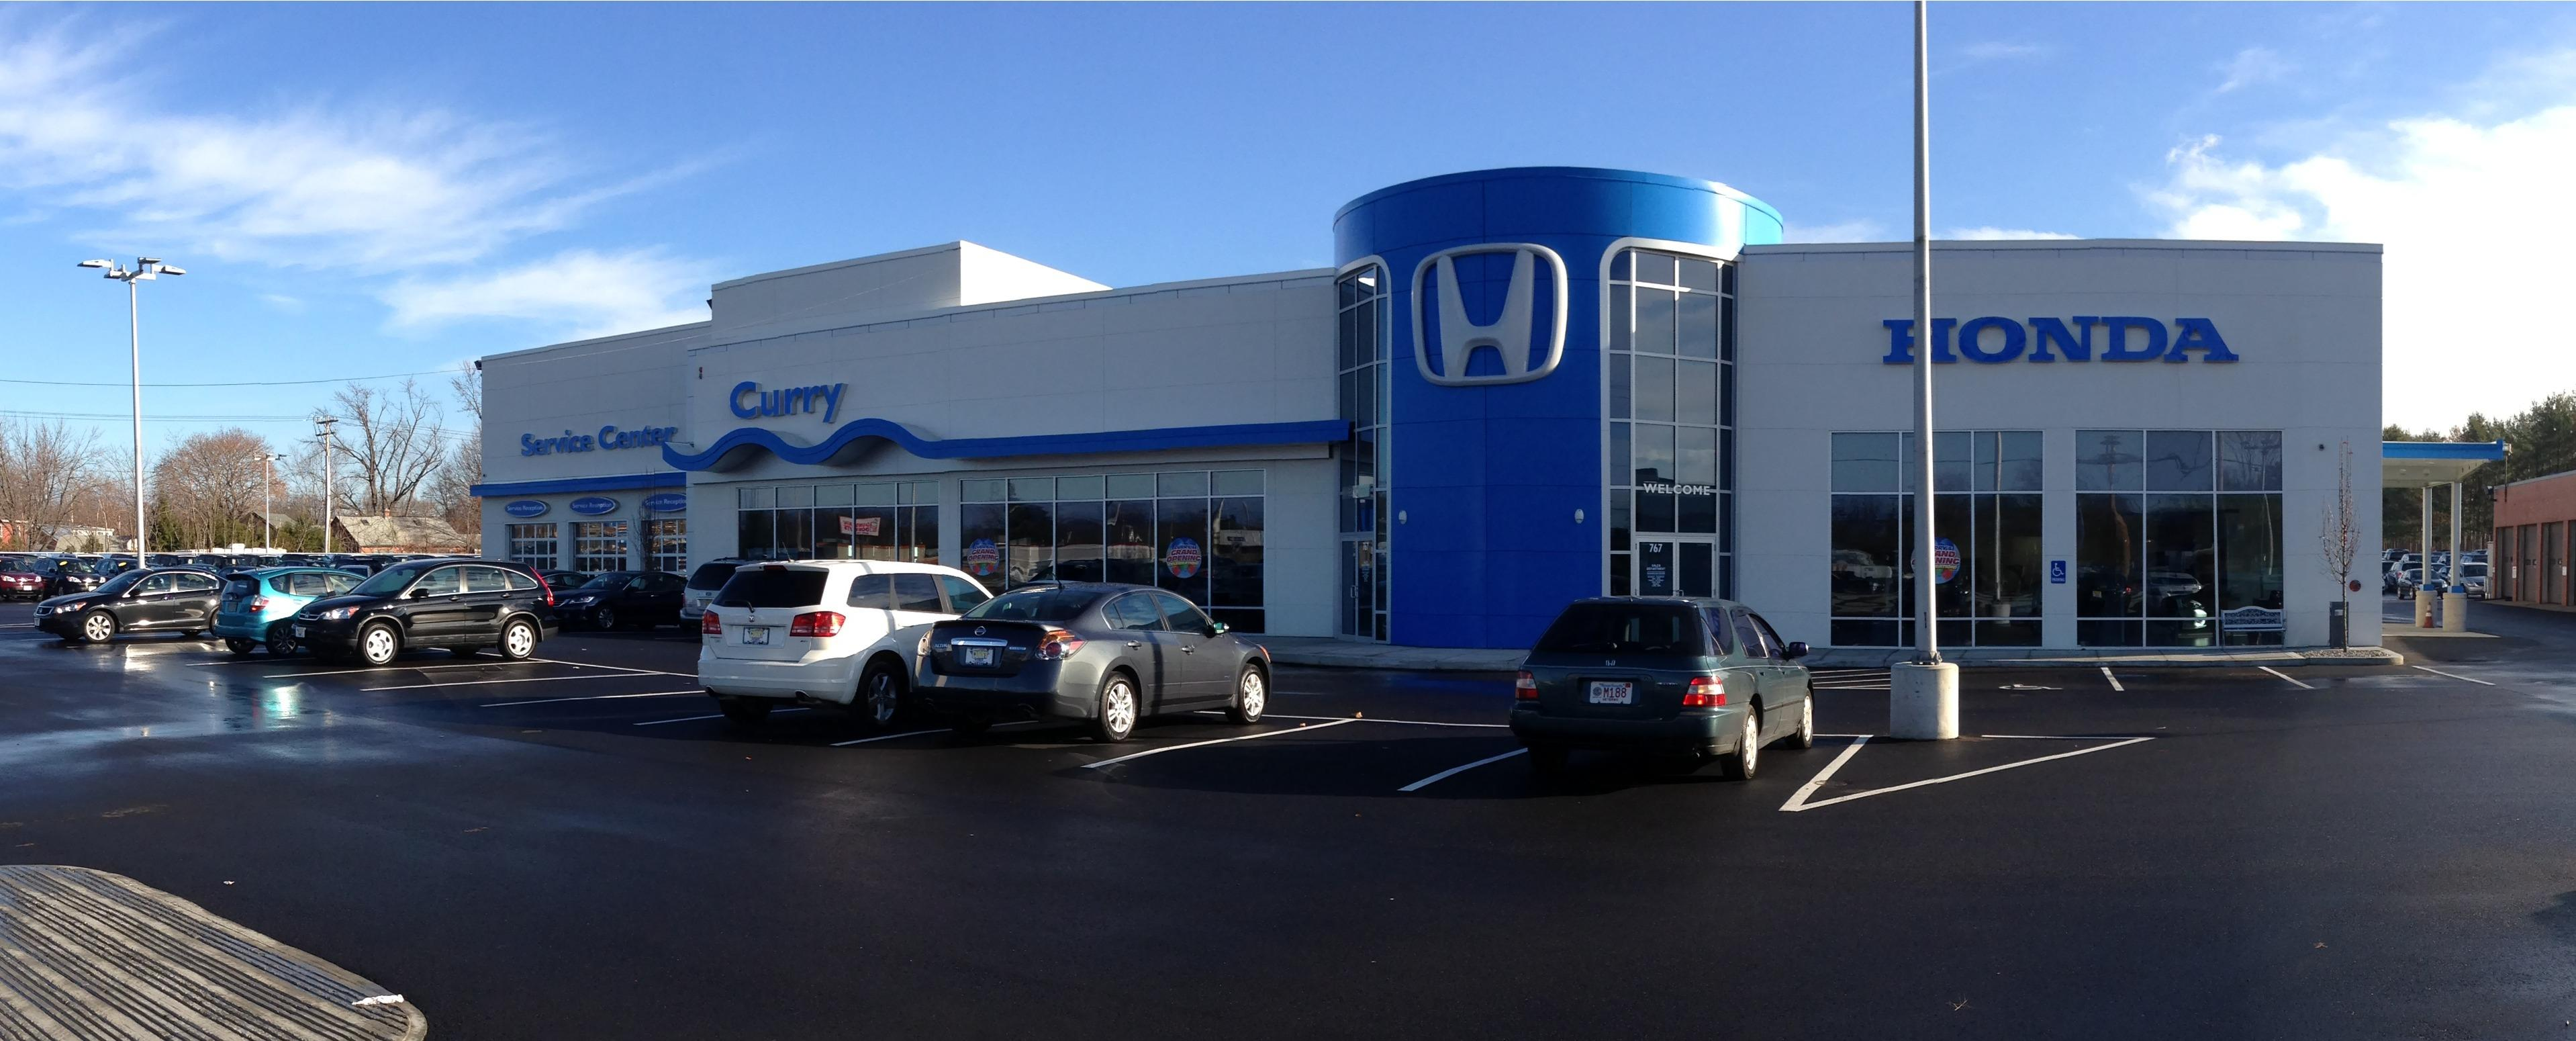 Curry Honda Chicopee 767 Memorial Drive Chicopee, MA Auto Dealers Used Cars    MapQuest